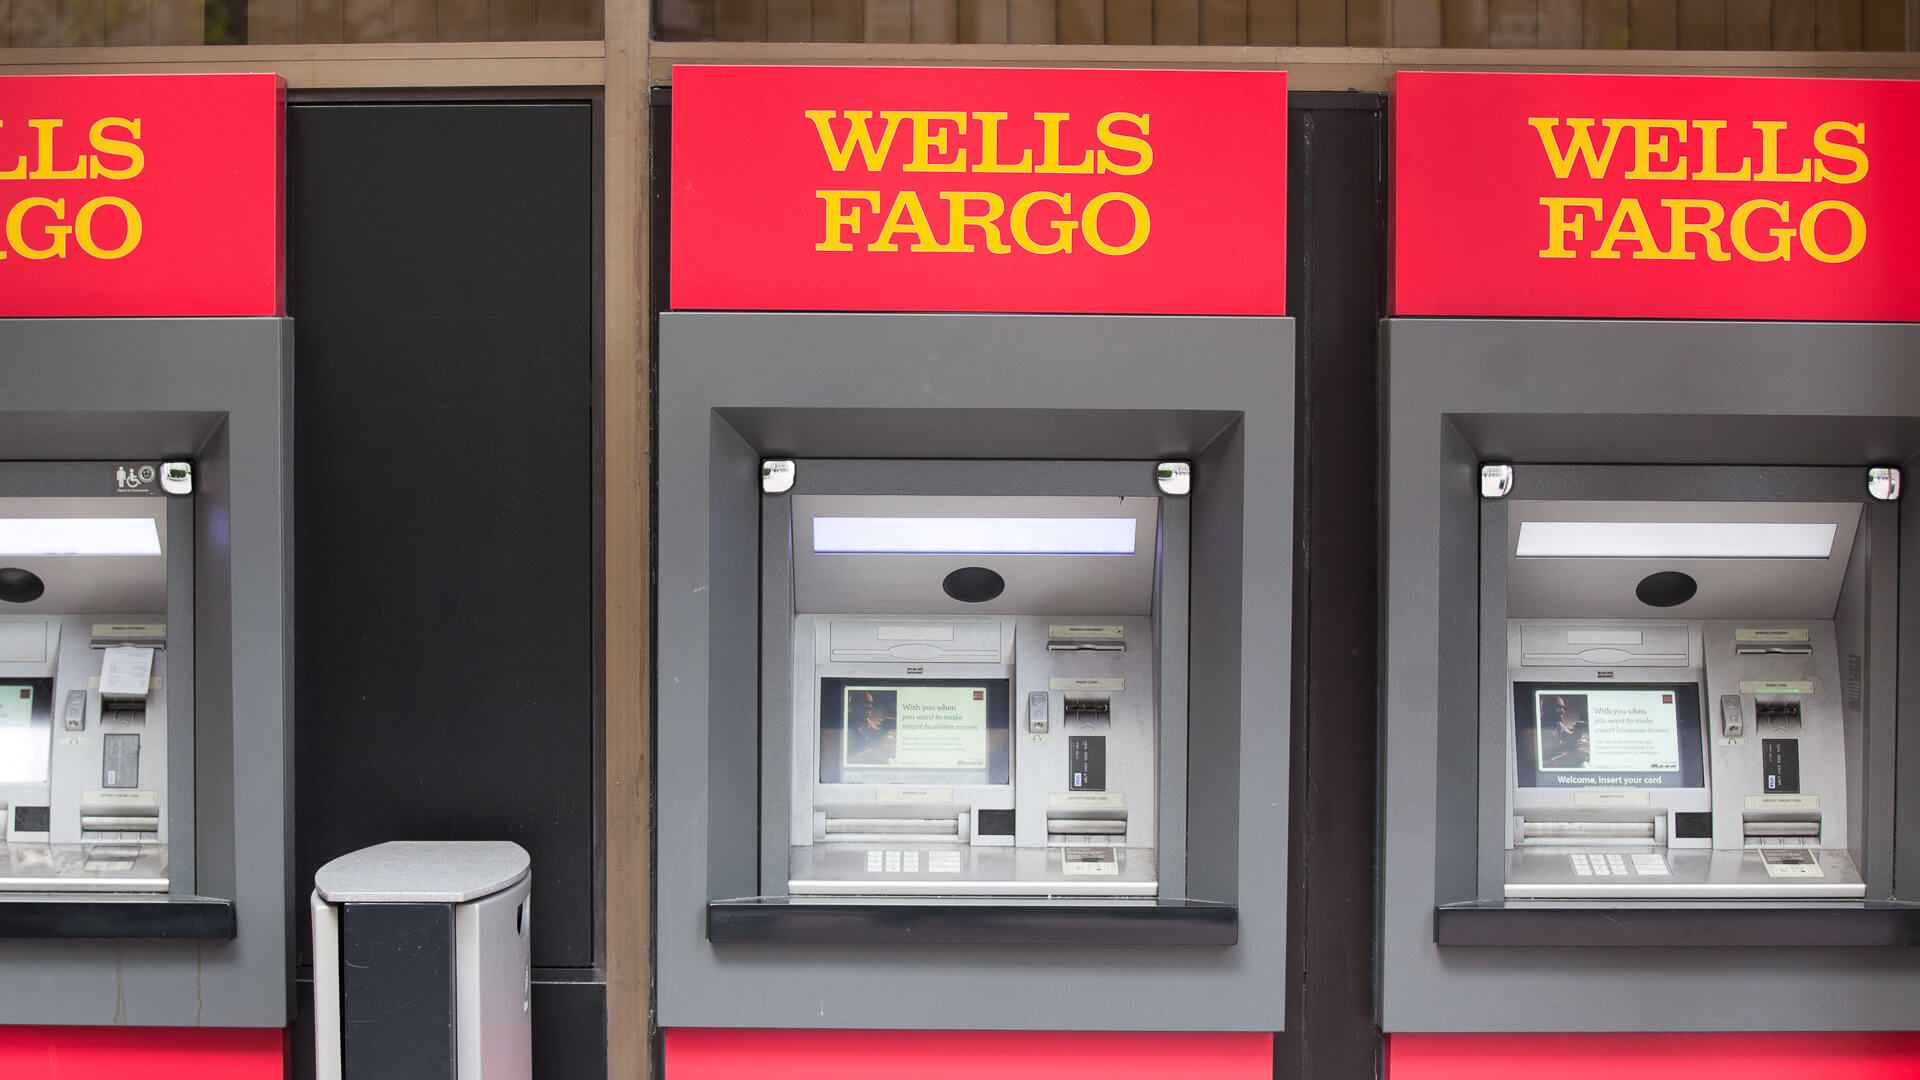 Wells Fargo ATM Withdrawal and Deposit Limits & How To Get More